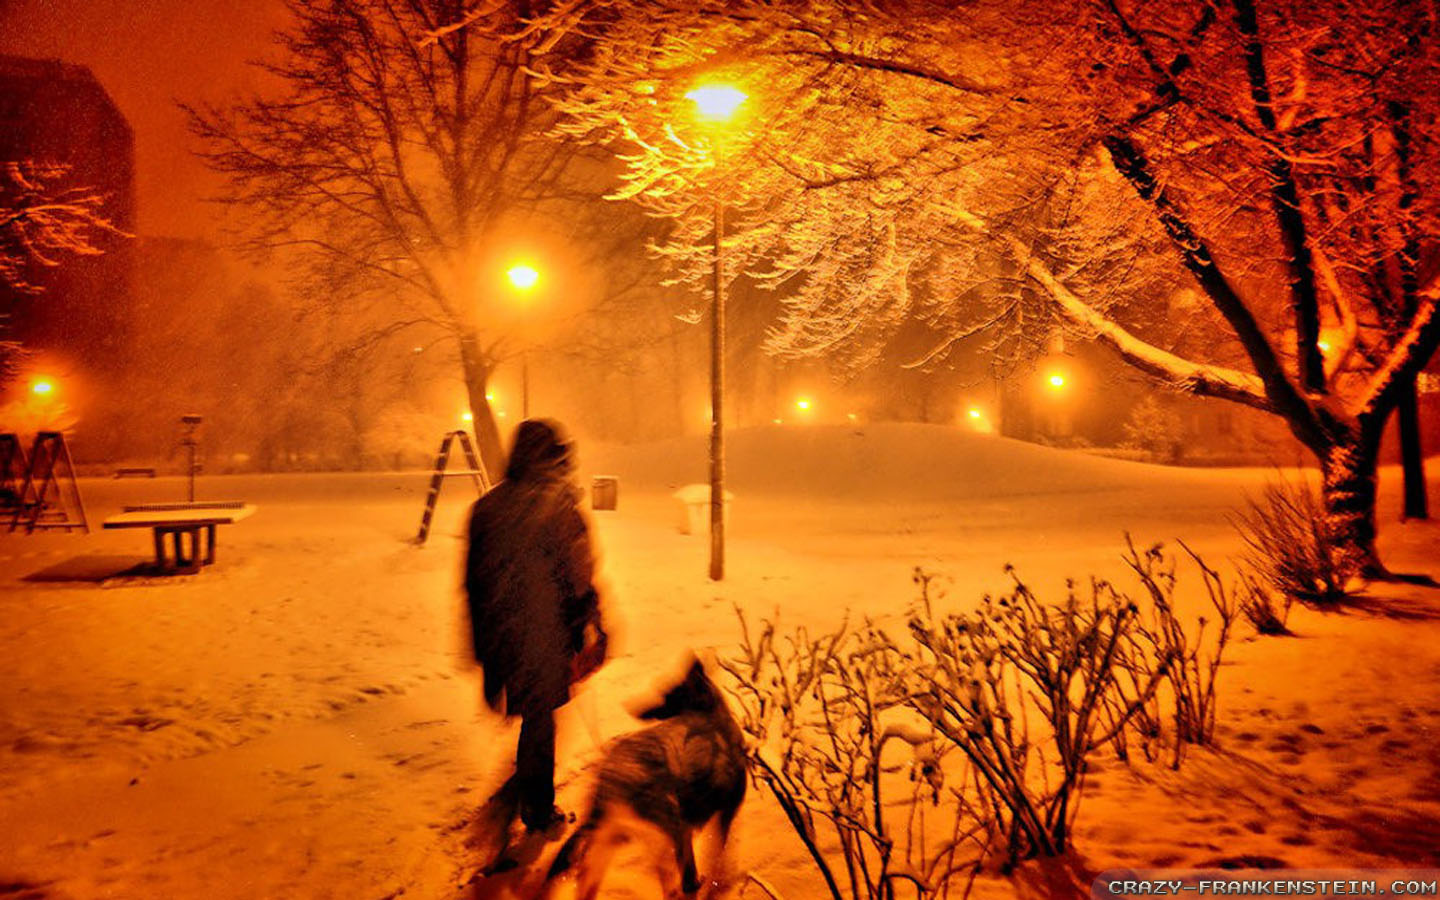 Snow Falling At Night Wallpaper Winter Night Wallpapers Crazy Frankenstein